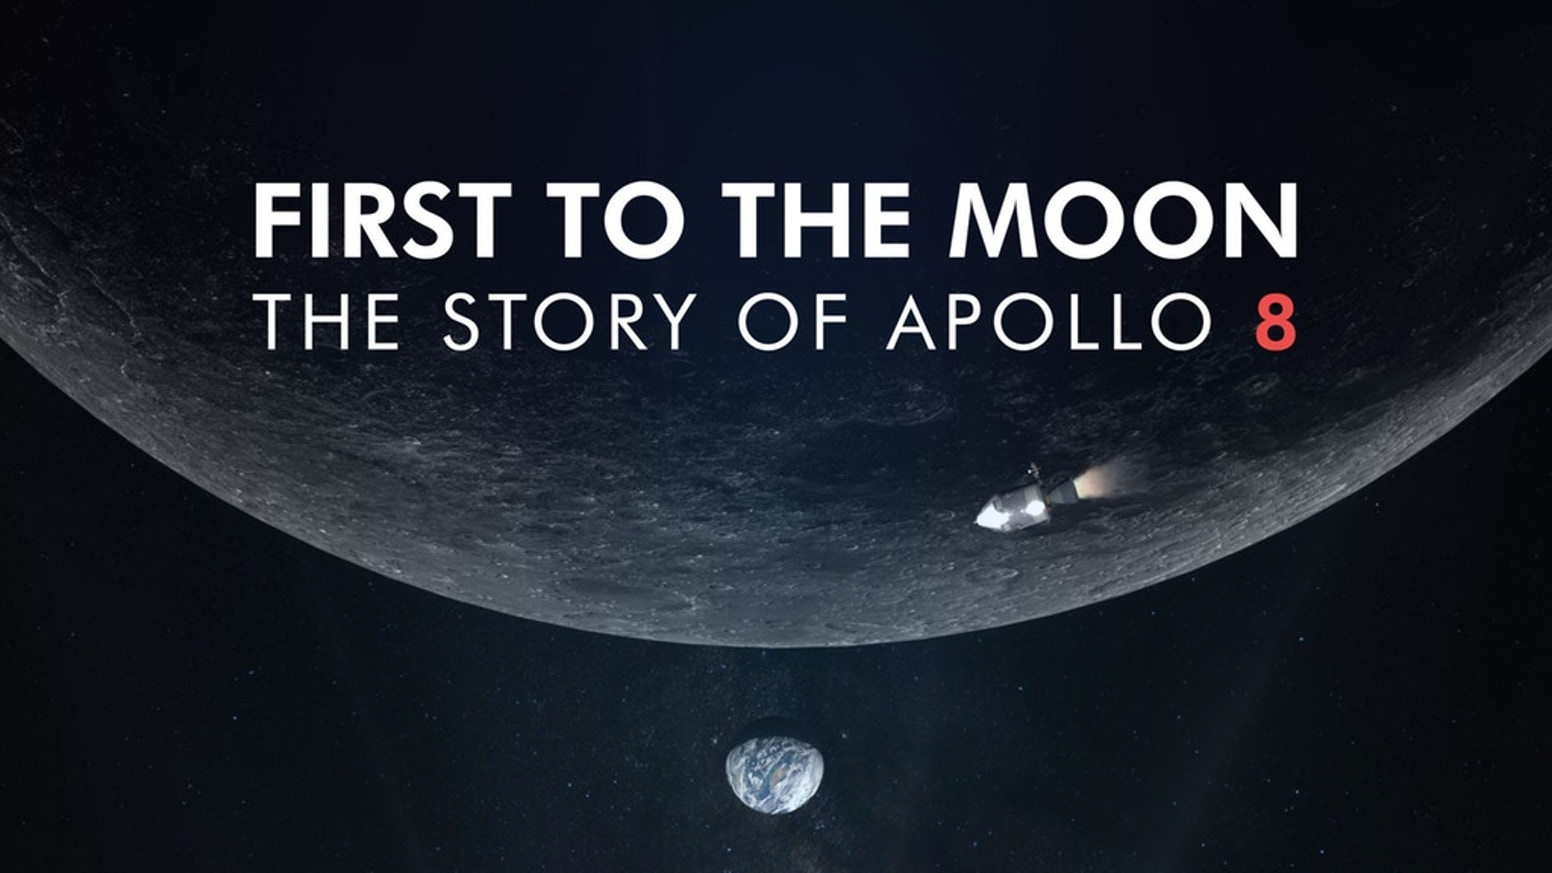 First to the Moon is a documentary film that tells the story of Apollo 8, the first mission that took humans beyond the earth in 1968.